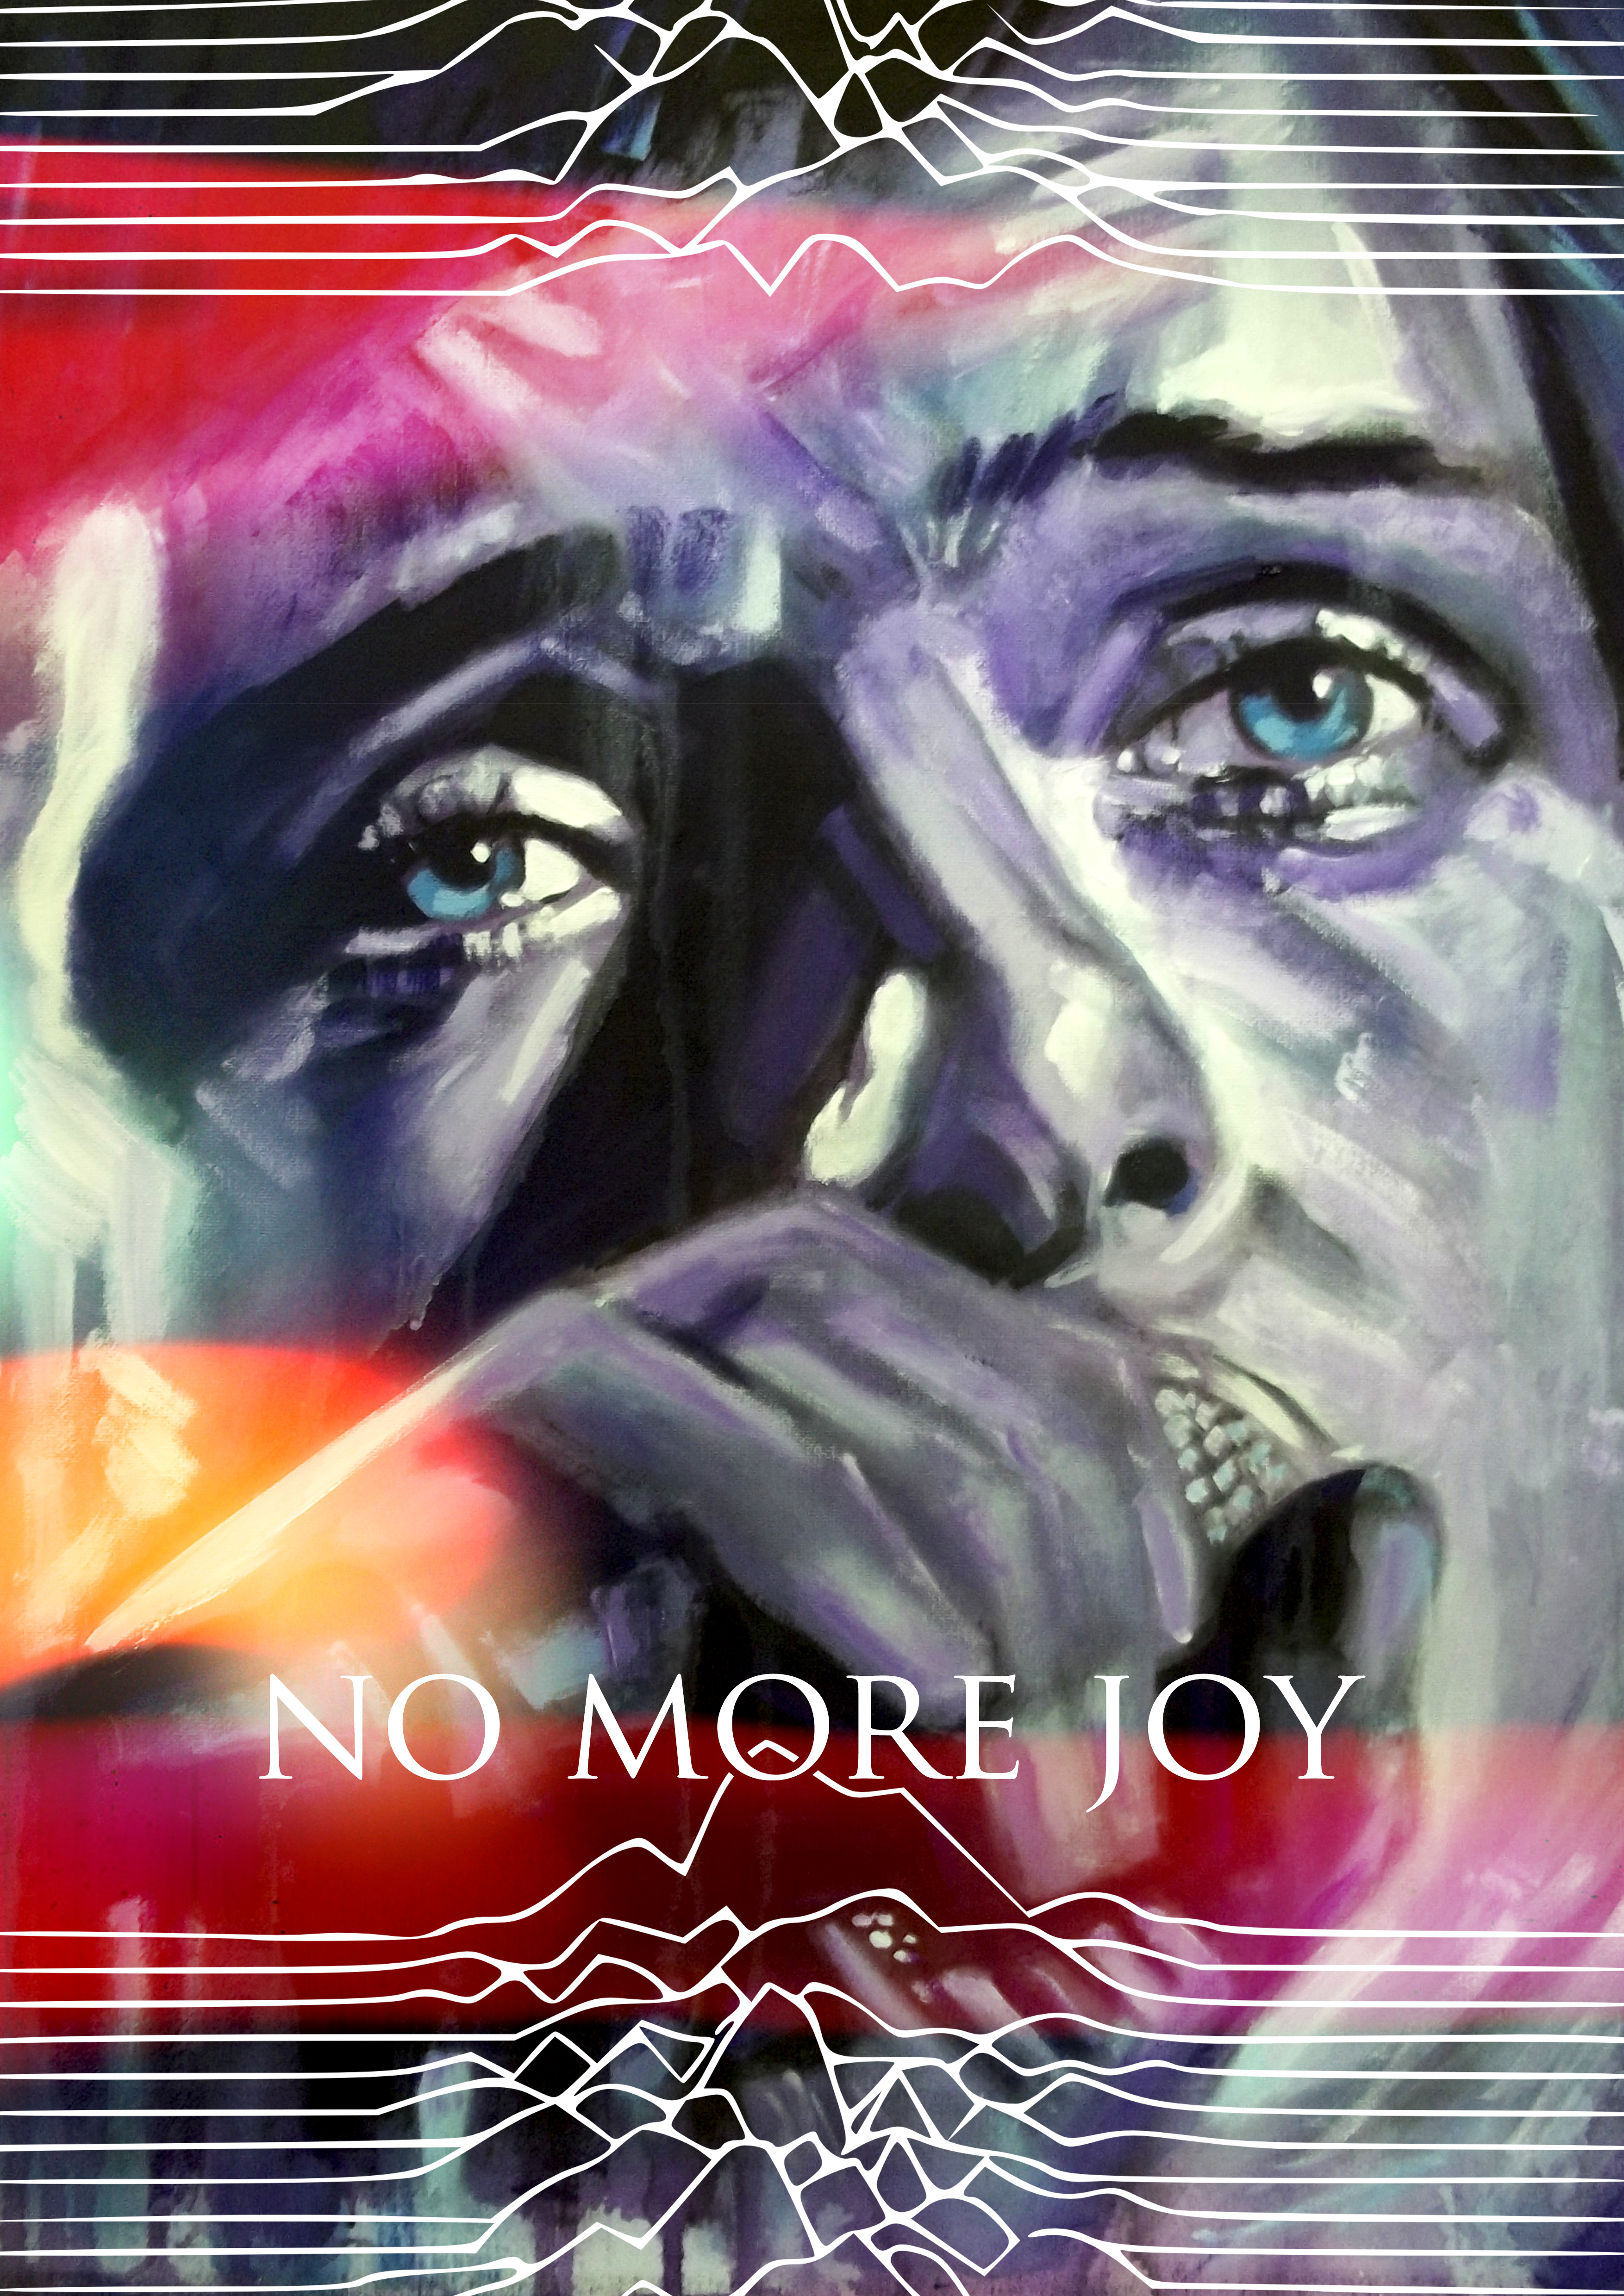 No More Joy